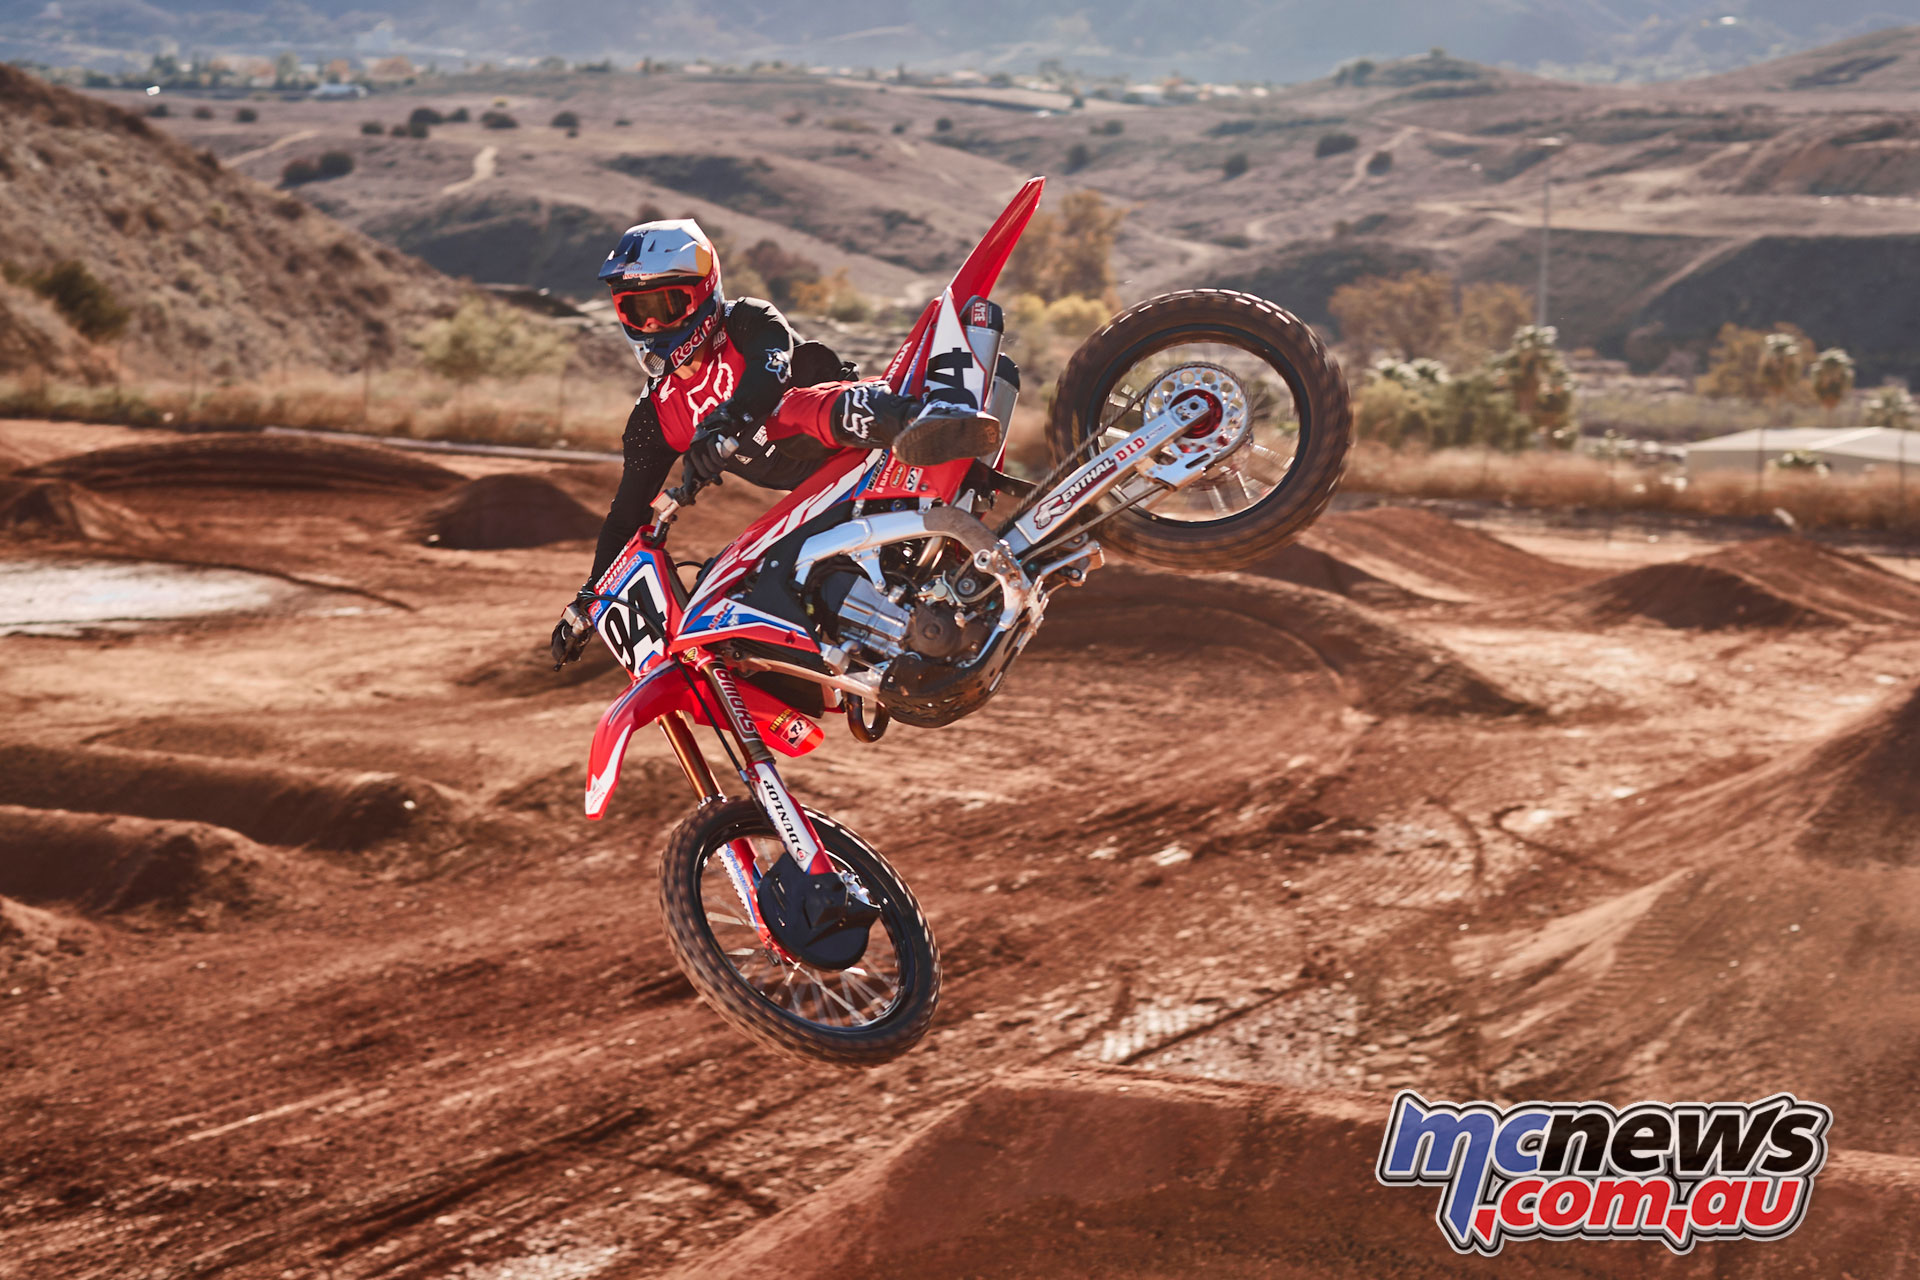 Honda signs Roczen for three years